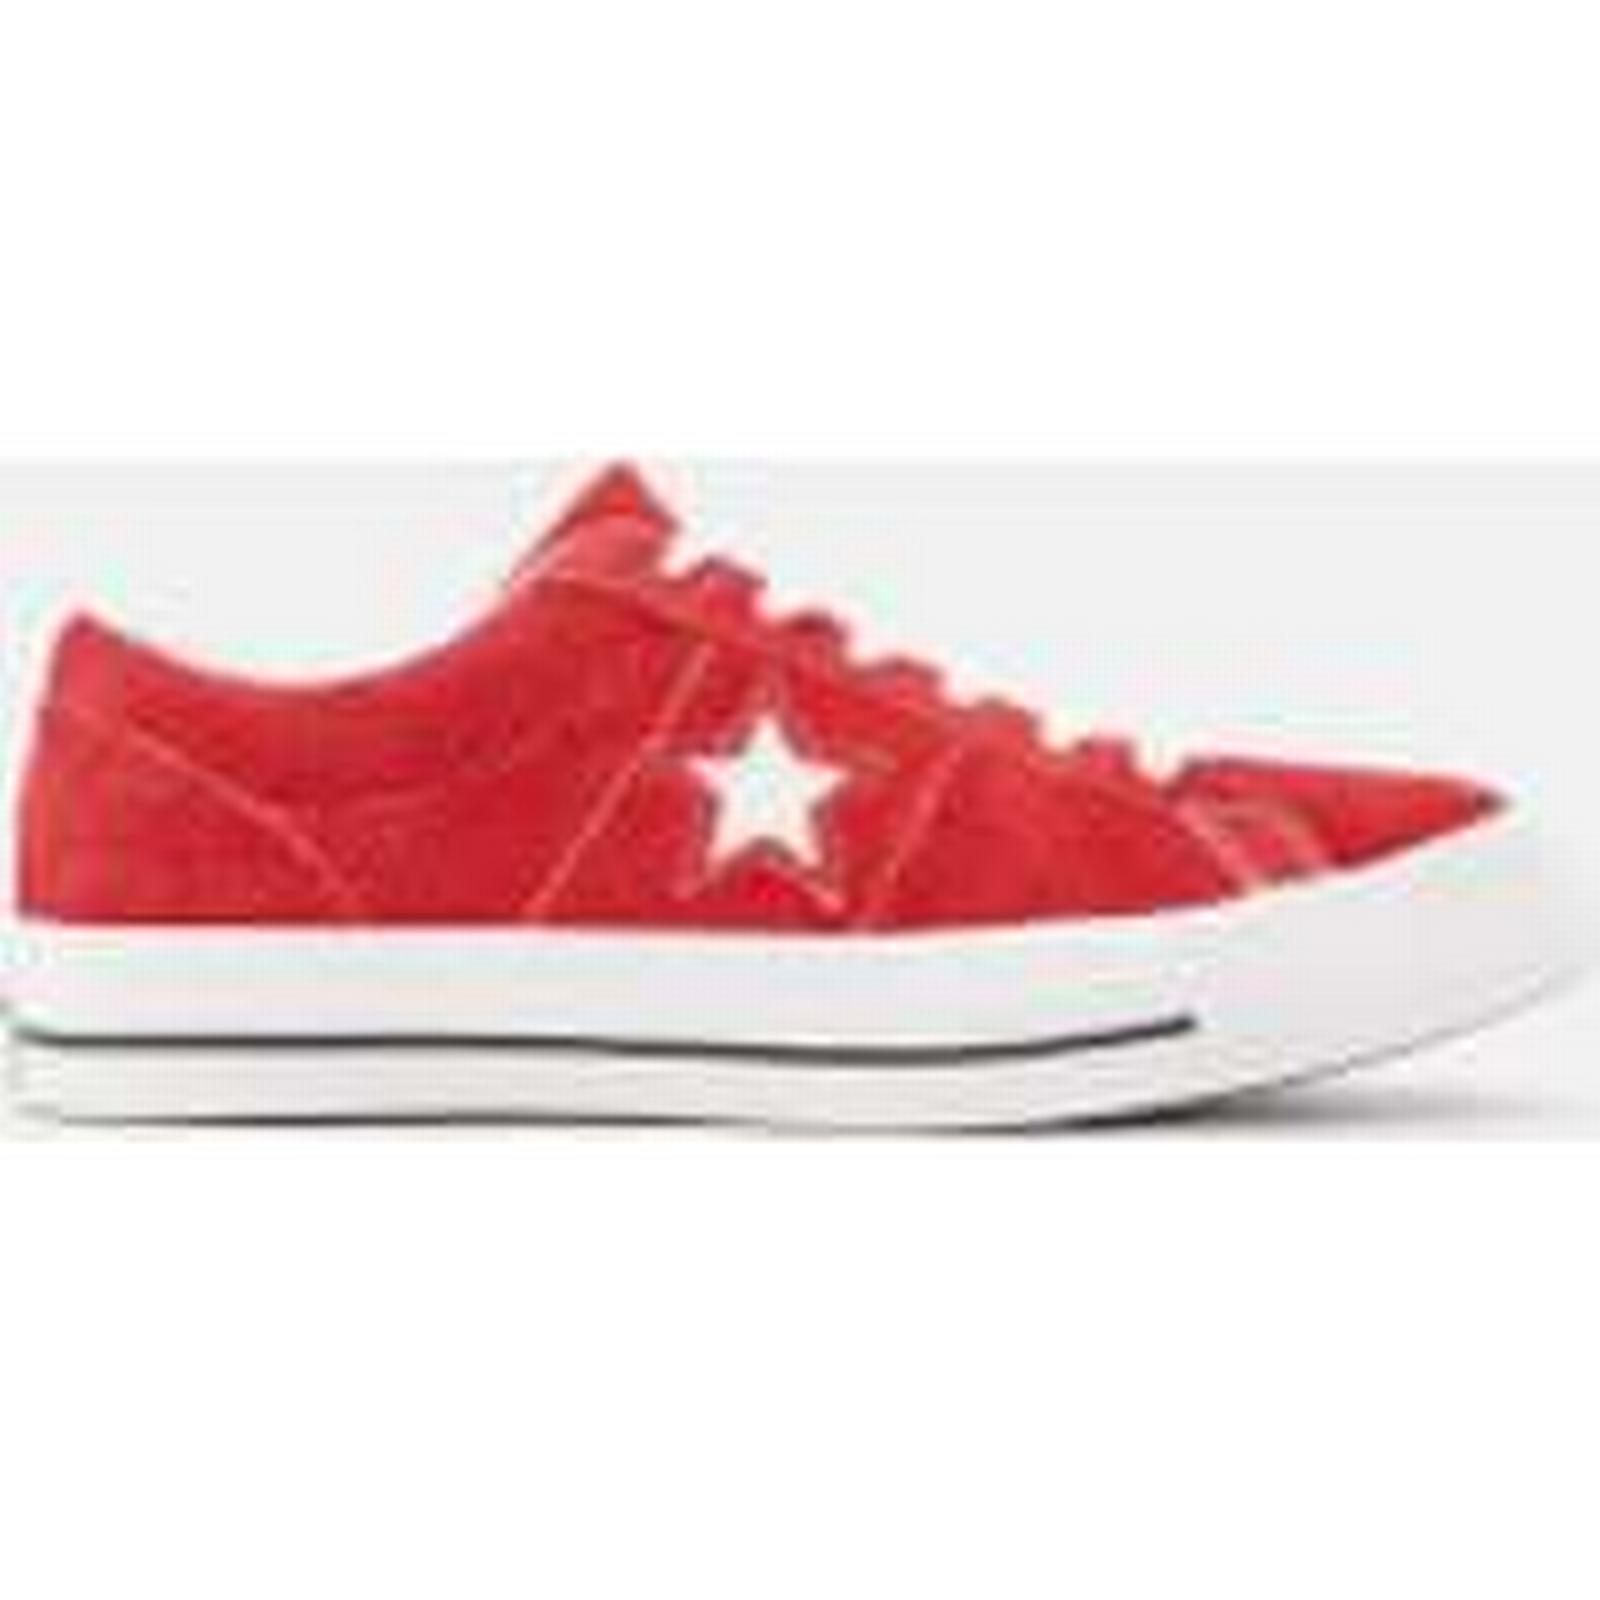 Converse One Red/White Star Ox Trainers - Red/White One - UK 10 - Red b503dd